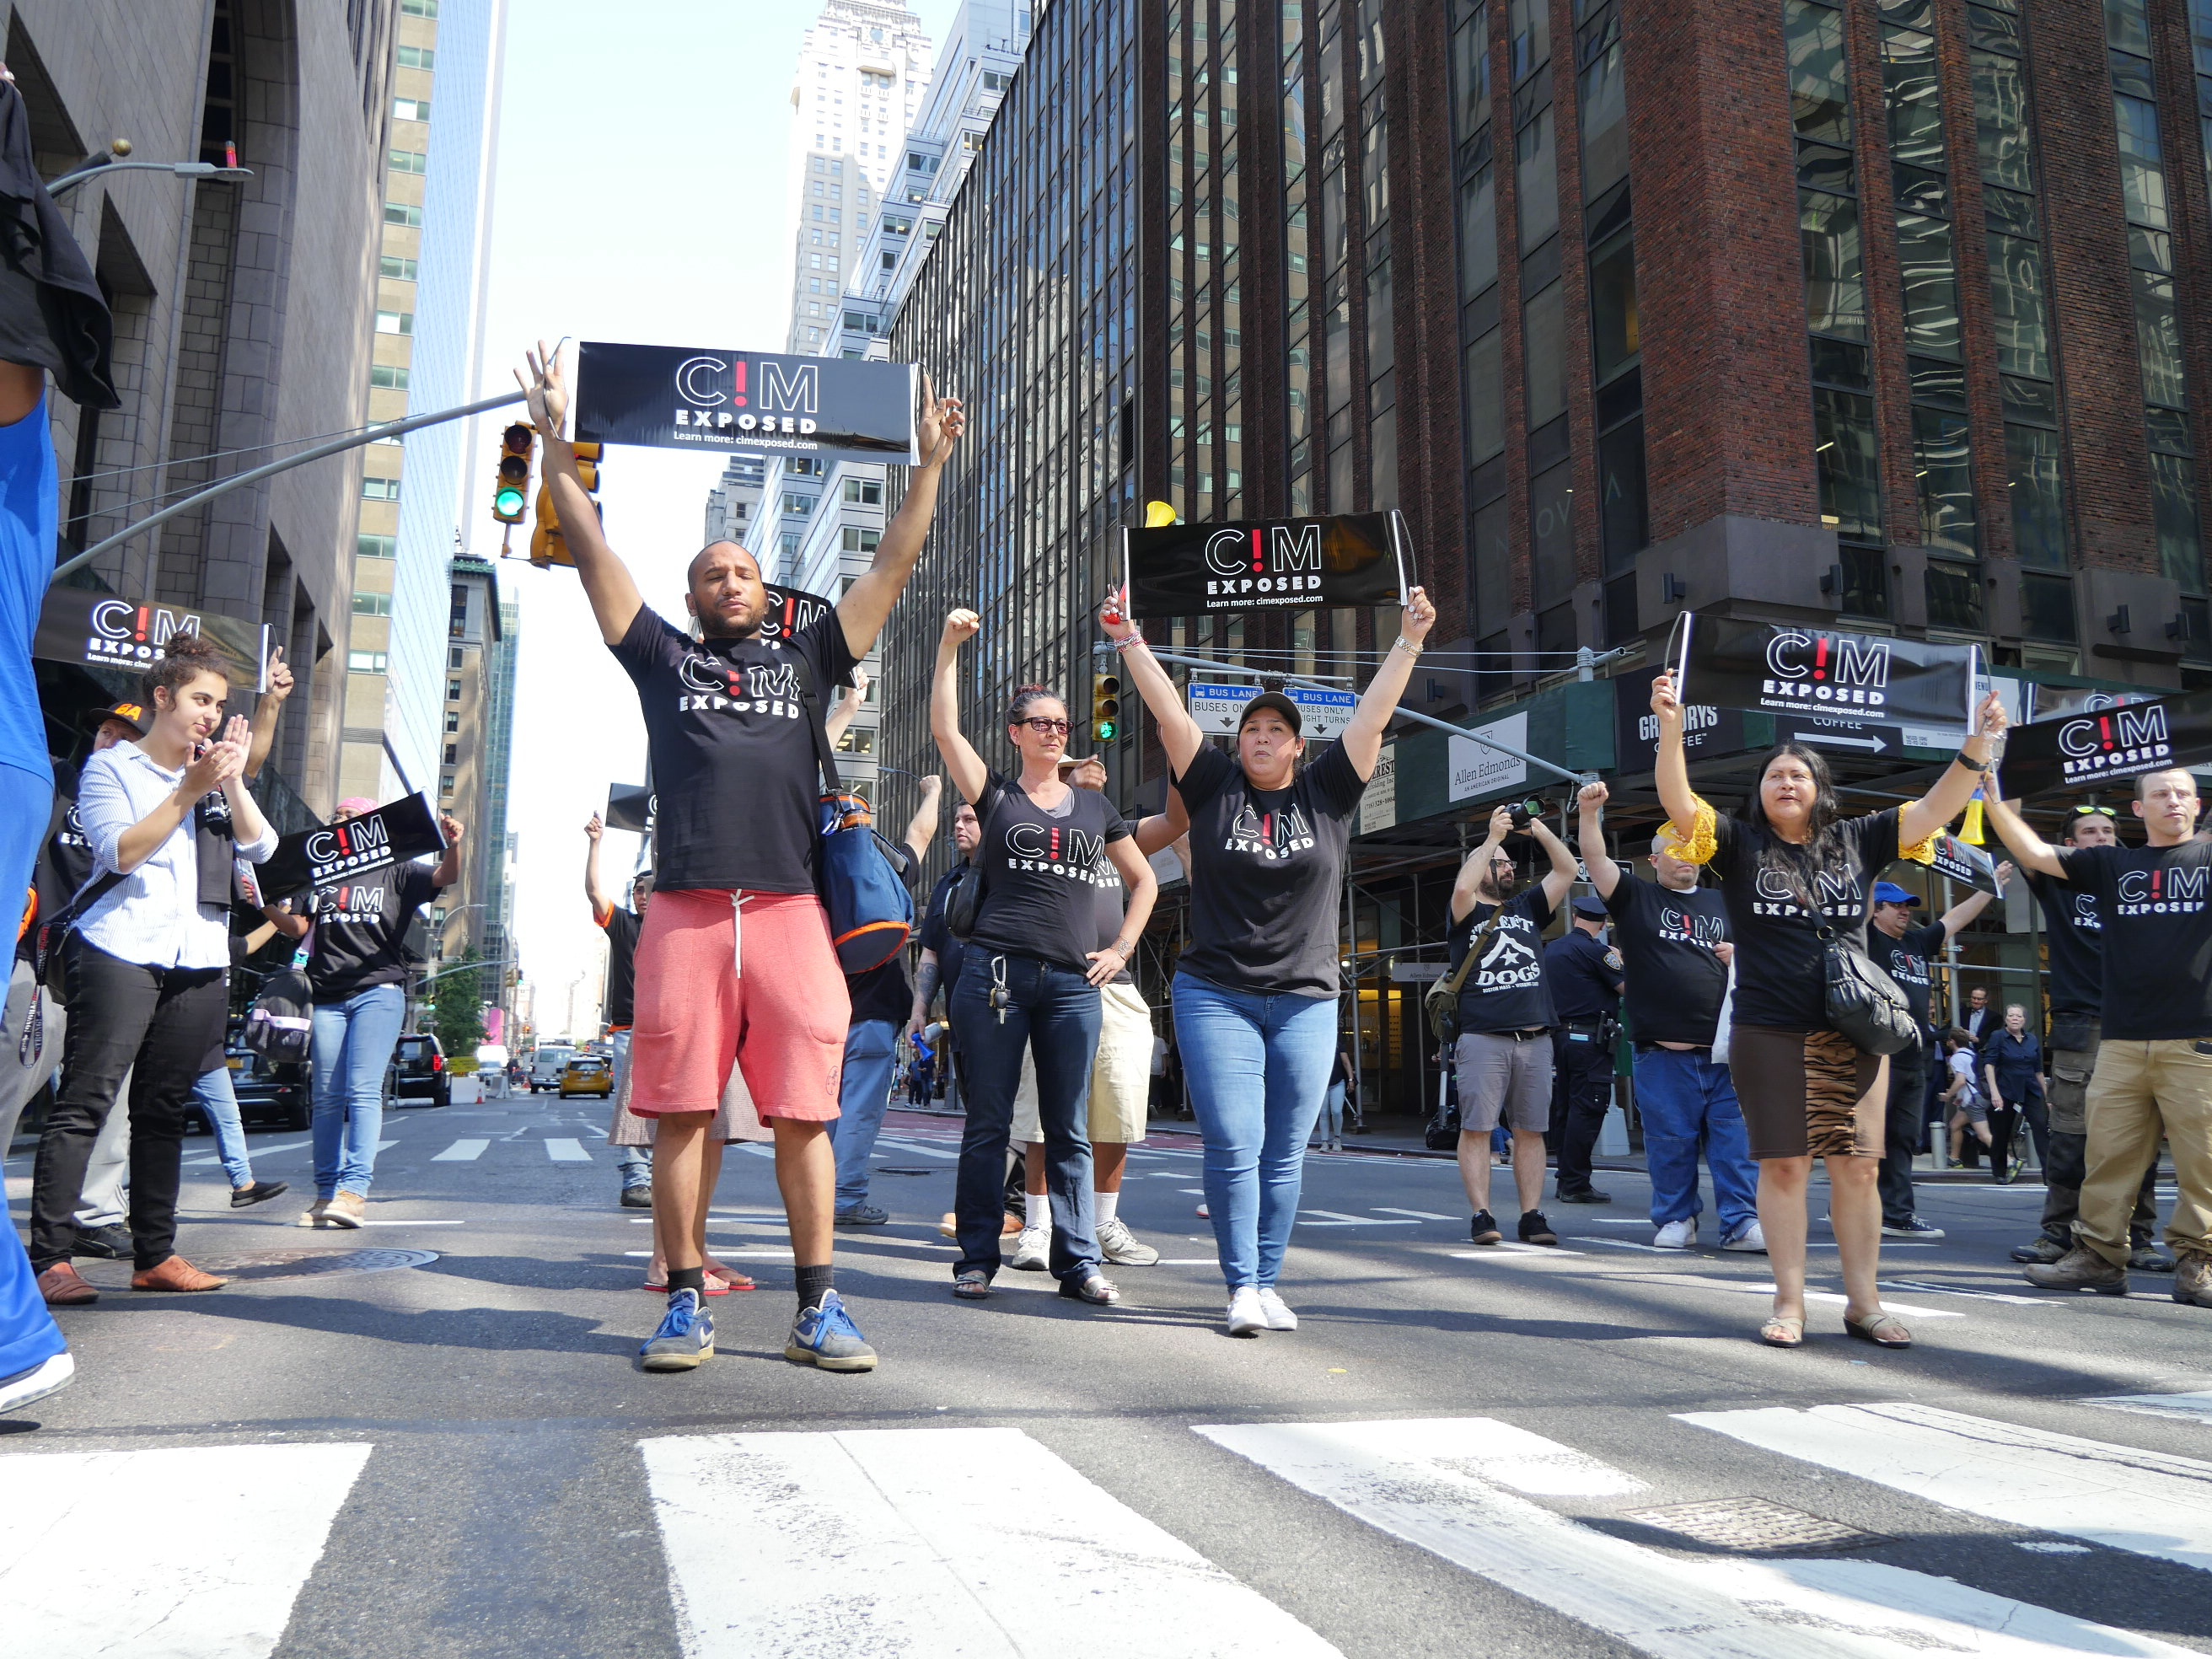 Trade Unionists Block Midtown Traffic In Fight For Middle Class Wages & Benefits